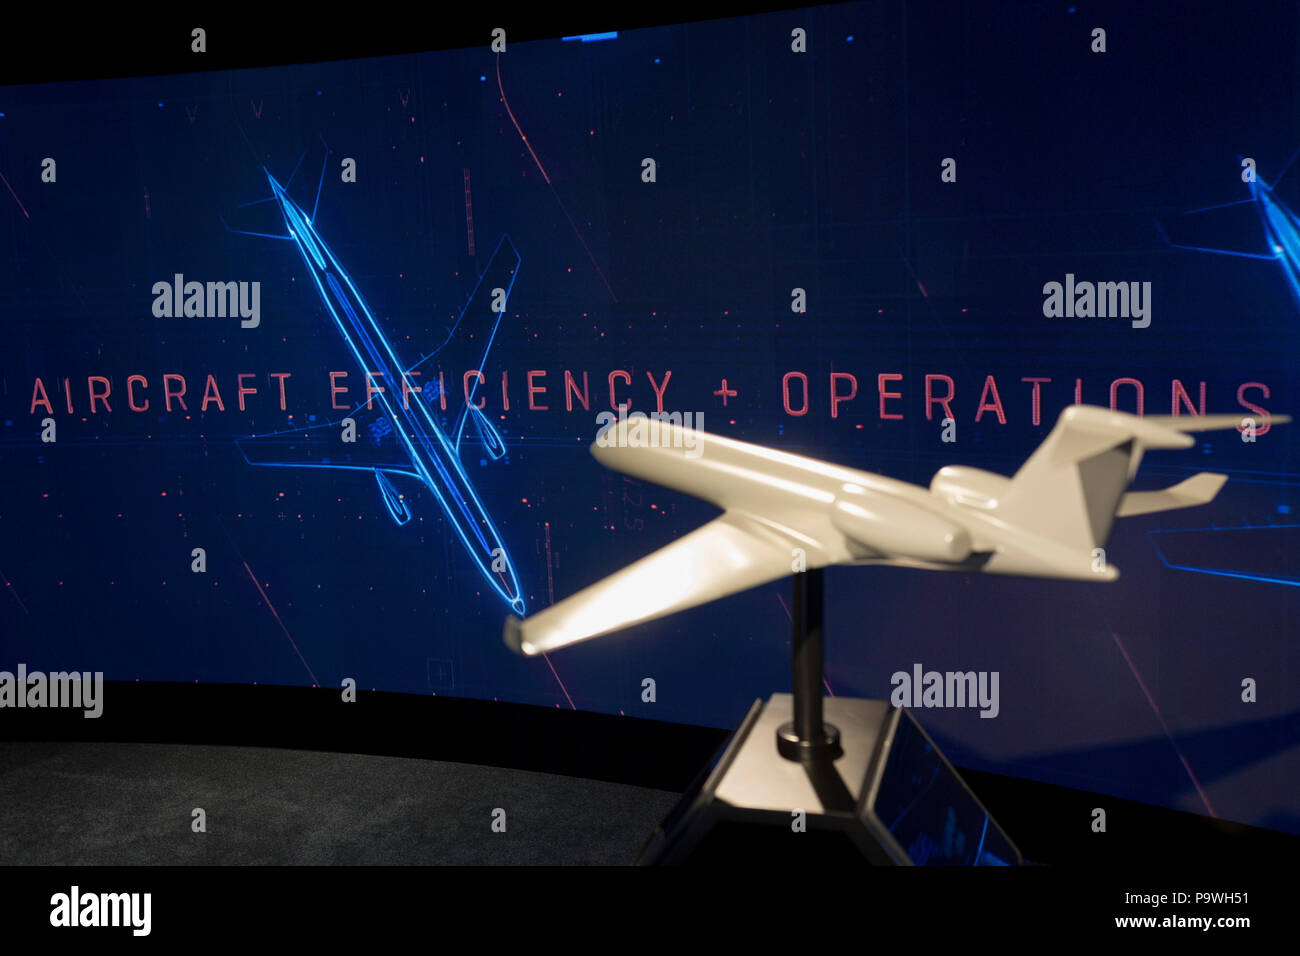 A model of a generic aircraft and the images from a video presentation in the exhibition chalet of United Technologies, at the Farnborough Airshow, on 16th July 2018, in Farnborough, England. United Technologies are the parent company to  Otis,, UTC Climate, Controls & Security, Pratt & Whitney and UTC. - Stock Image